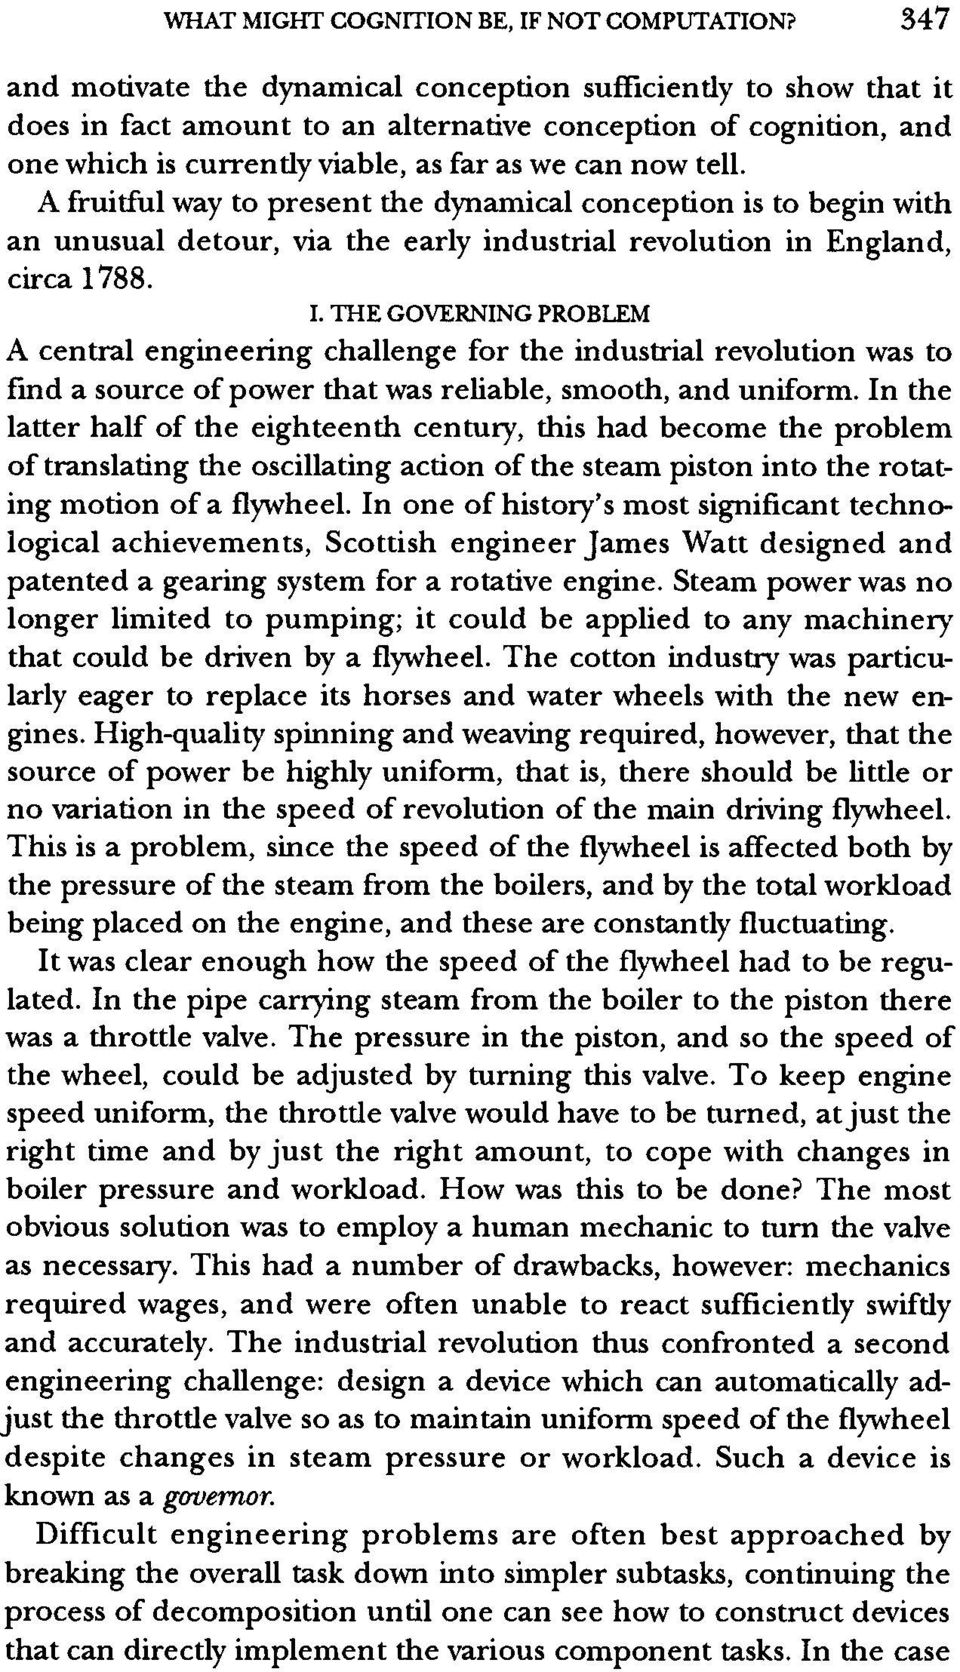 A fruitful way to present the dynamical conception is to begin with an unusual detour, via the early industrial revolution in England, circa 1788. I.